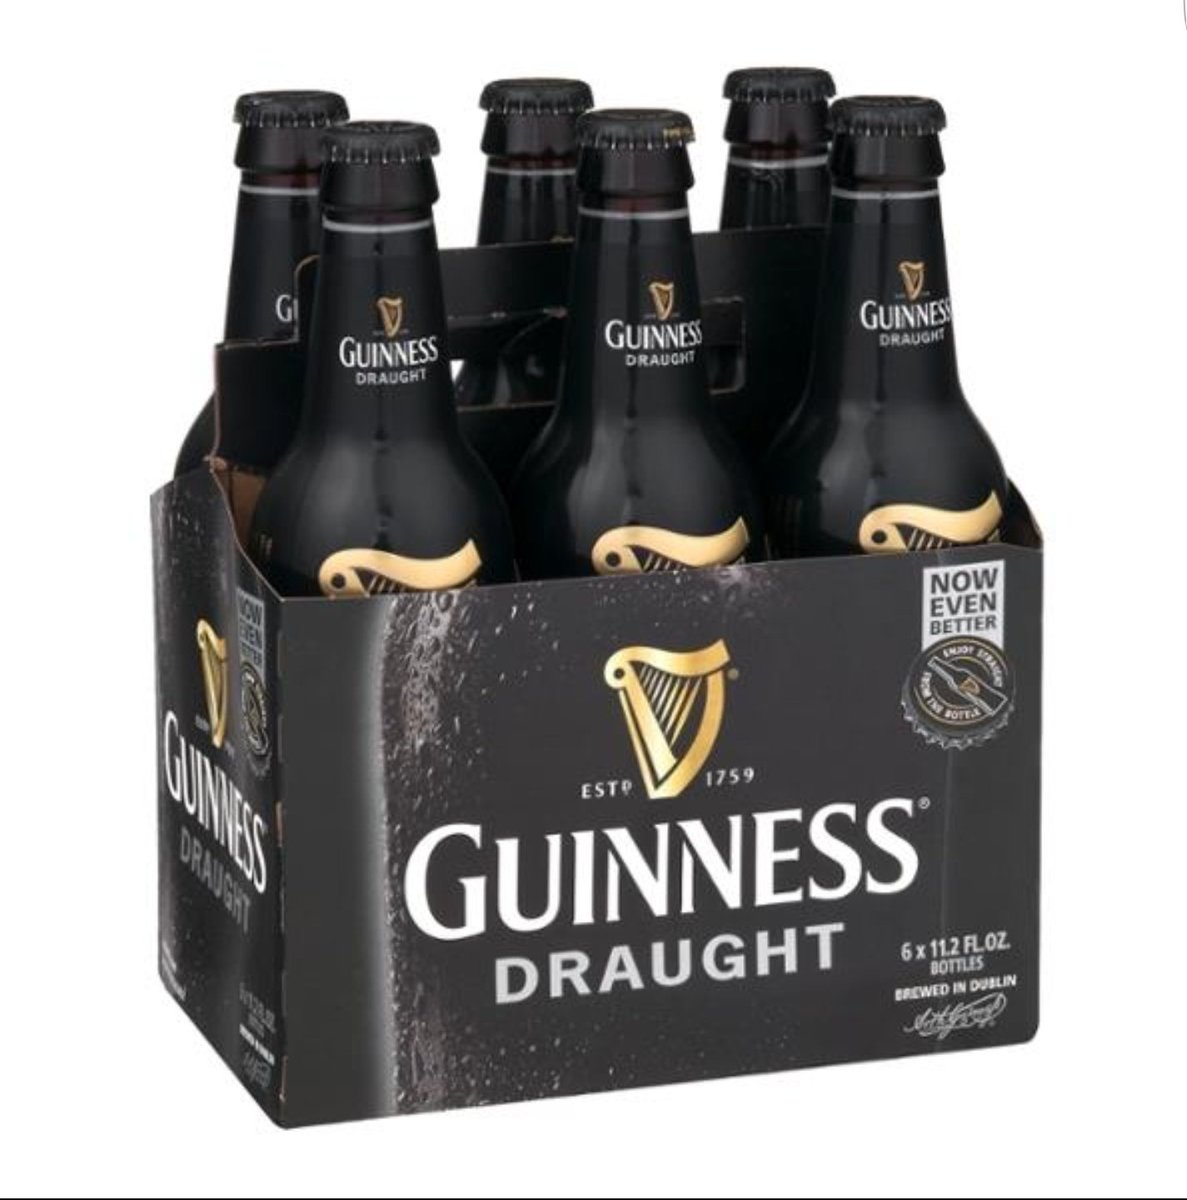 The only 6 Pack that a real man needs! #GUİNNESS #6pack #ThirstyThursday #Beeroclock<br>http://pic.twitter.com/vmgCCVD1DW